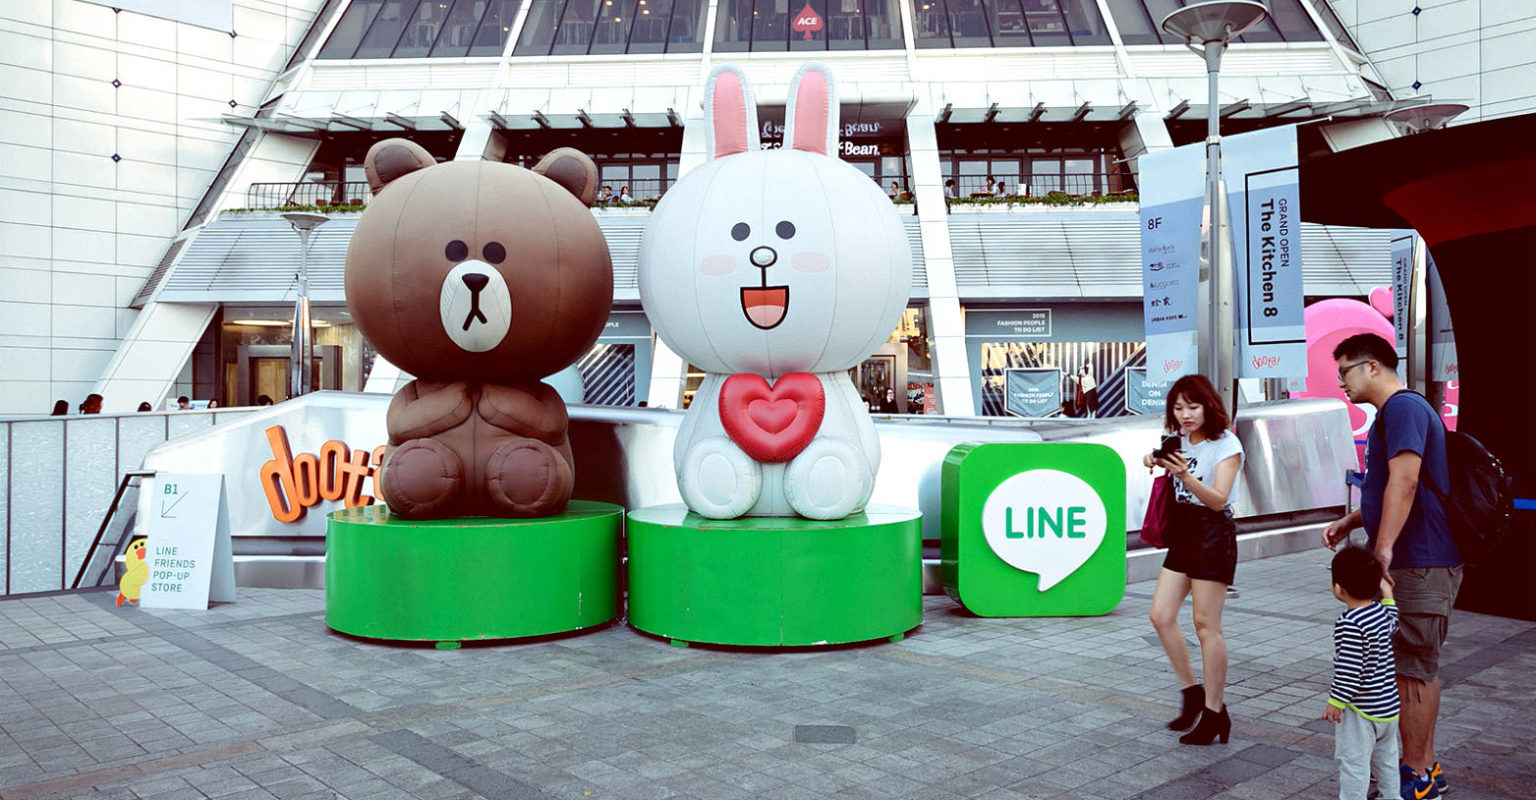 Siam Center, Line village figuren, brown en Cony